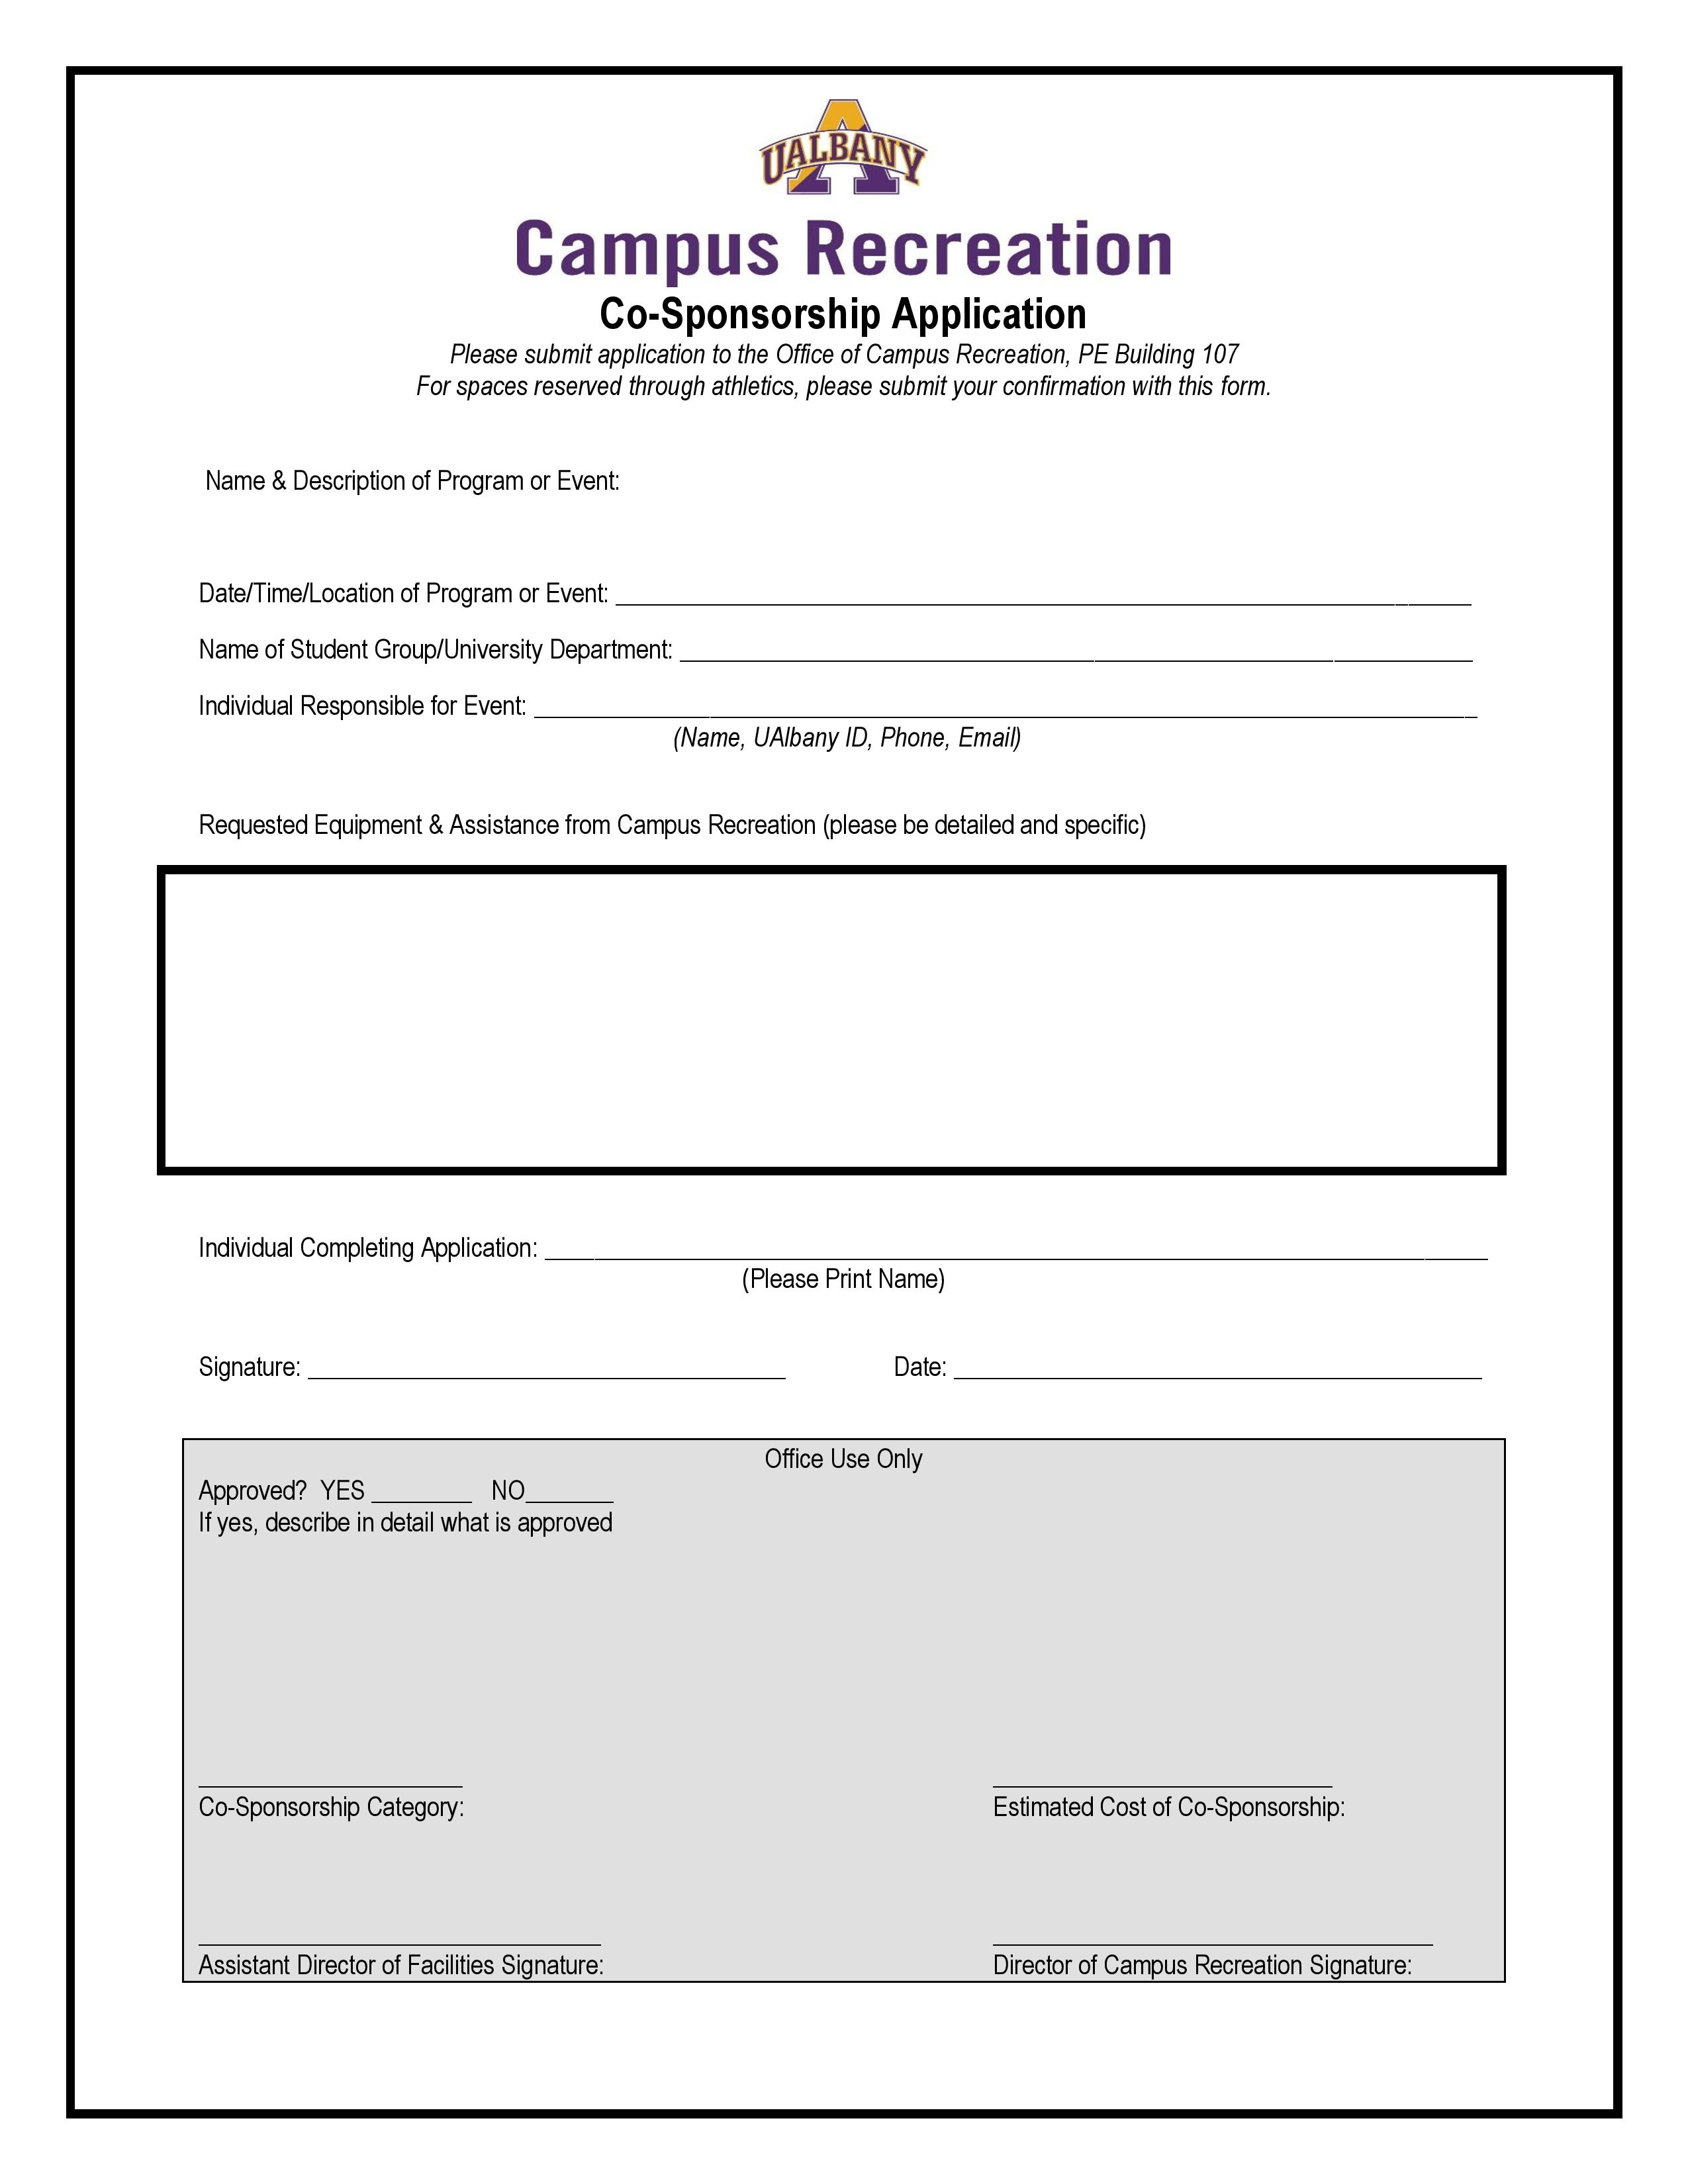 Download The Form By Clicking On It Below. - Fill In The Editable Pdf Form  Using Adobe Reader Or Similar Software. - Save The Filled In Form.